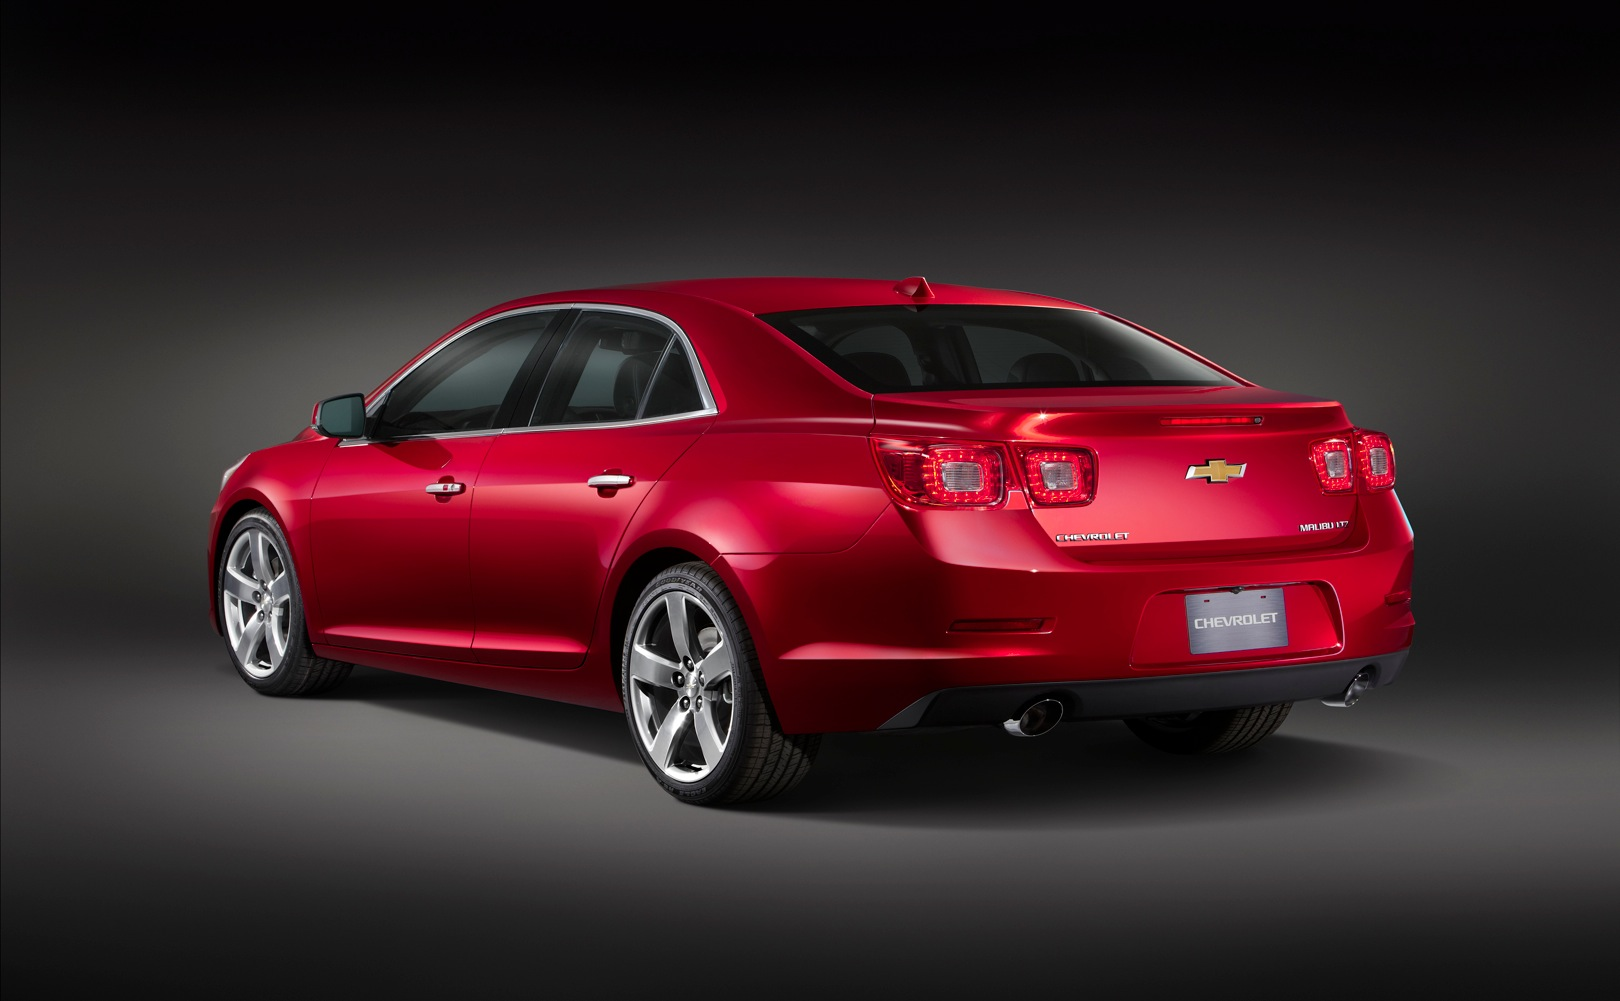 brochure design home html with Chevrolet Malibu 2012 on Family Tree Template Excel besides New Cars L1520 as well 3 Stars And Sun High Resolution Vector further Chevrolet Malibu 2012 additionally Olfa Cutter L5 Al For 18 Mm Blades.